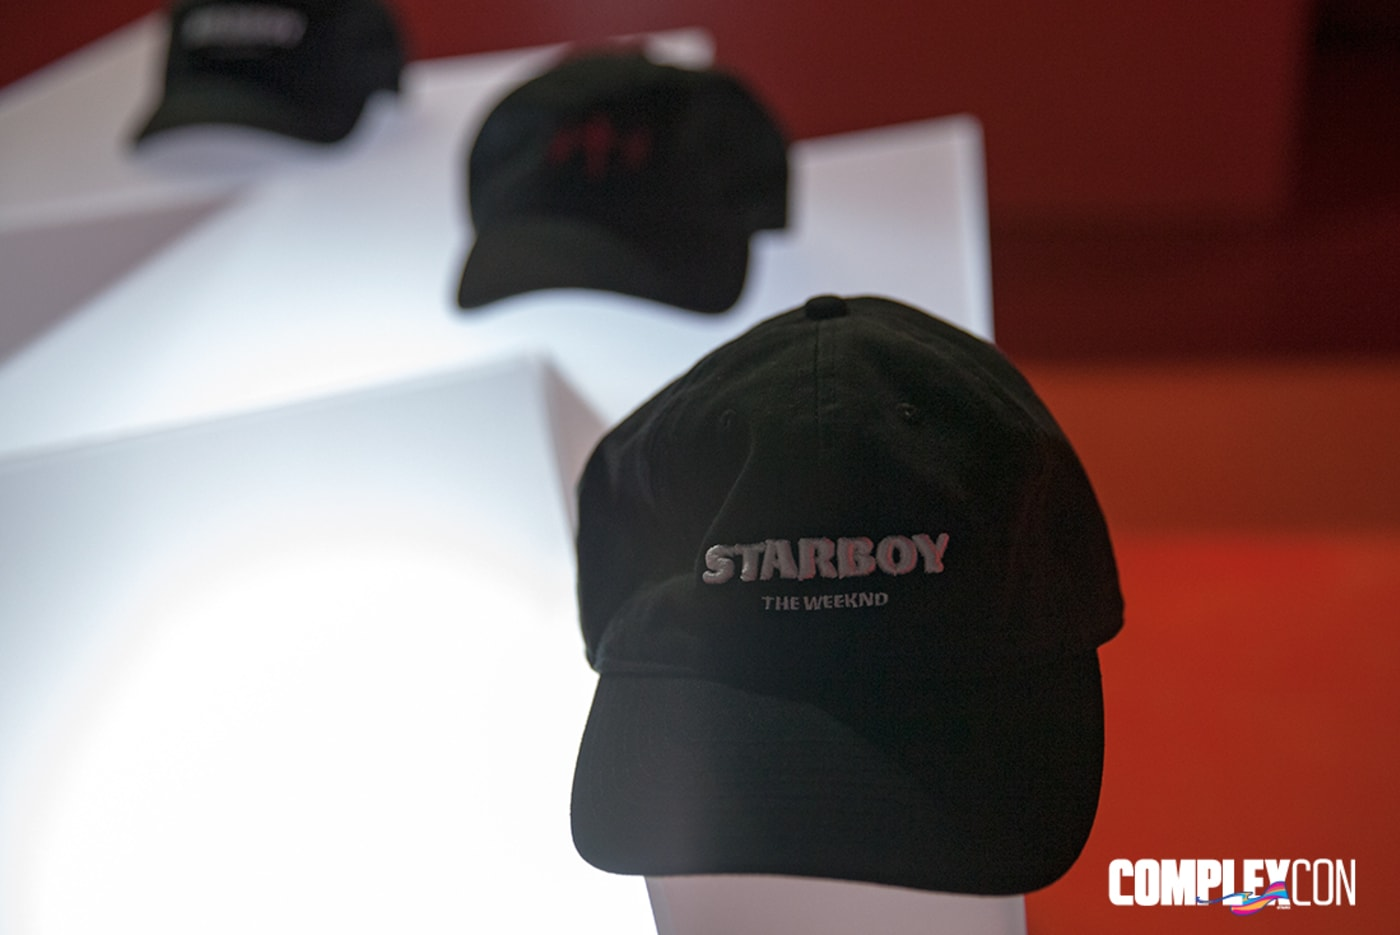 The Weeknd Starboy merch